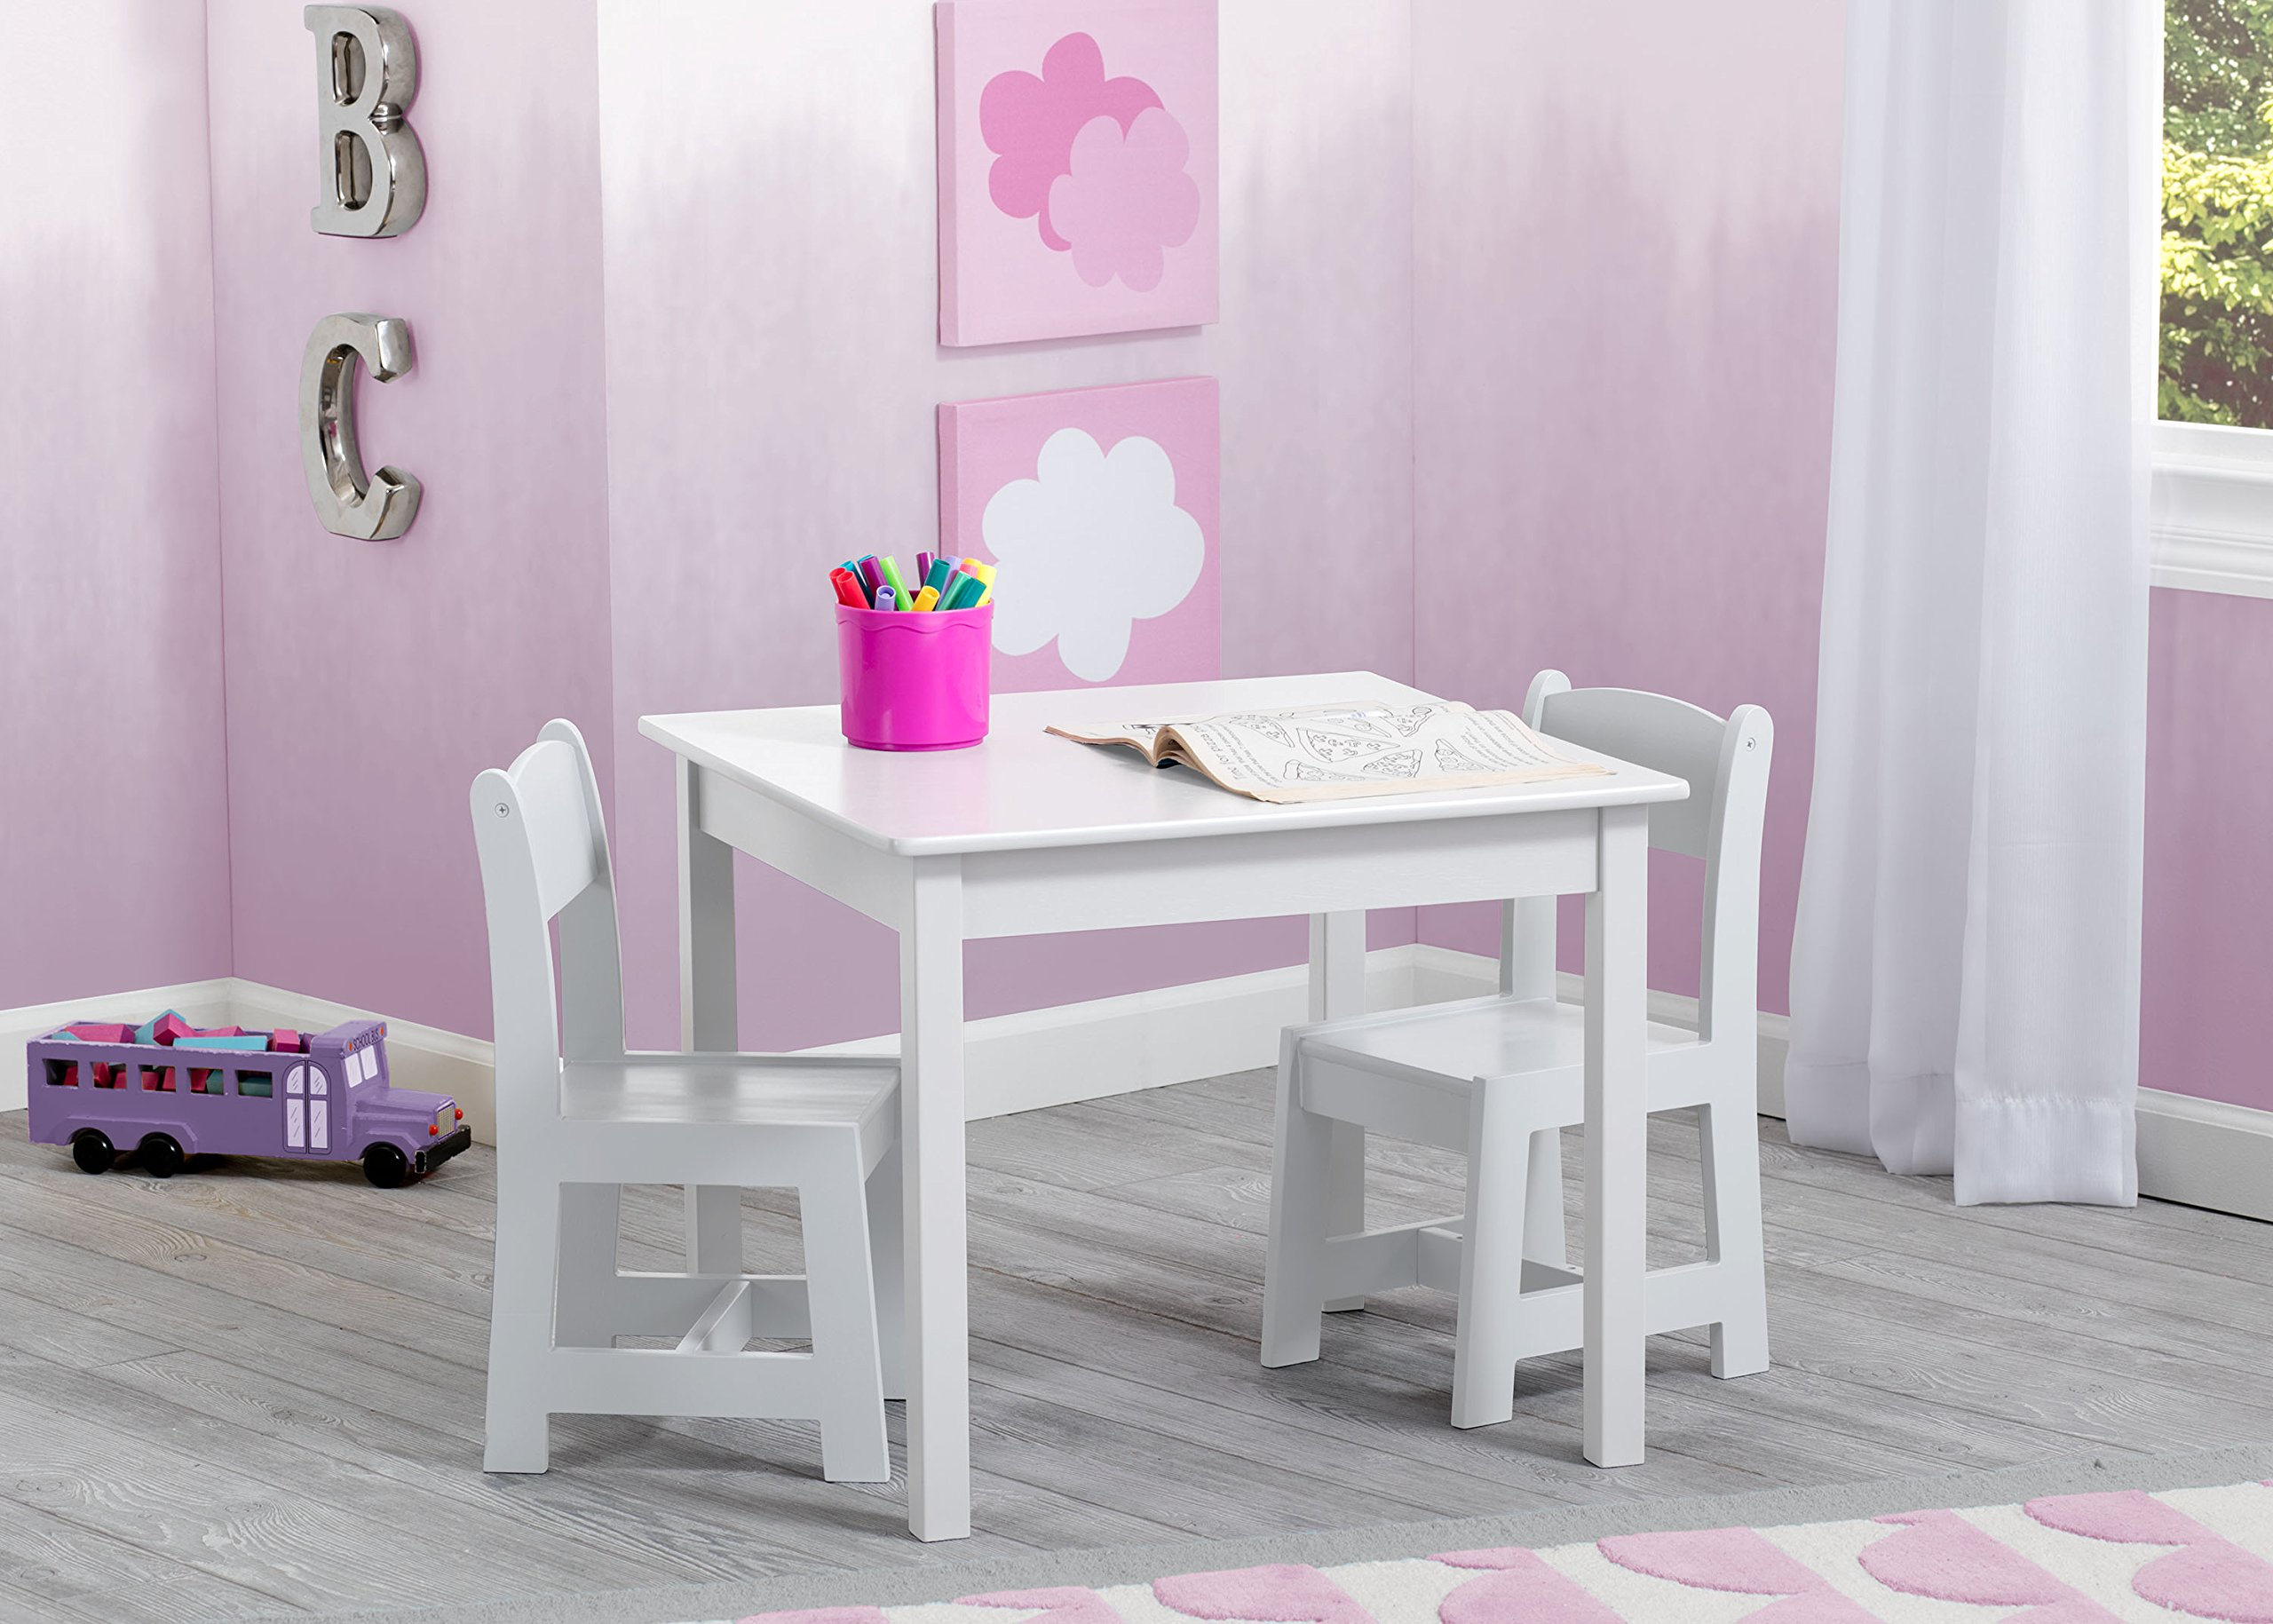 Delta Children MySize Kids Wood Table and Chair Set (2 Chairs Included), Bianca White by Delta Children (Image #2)